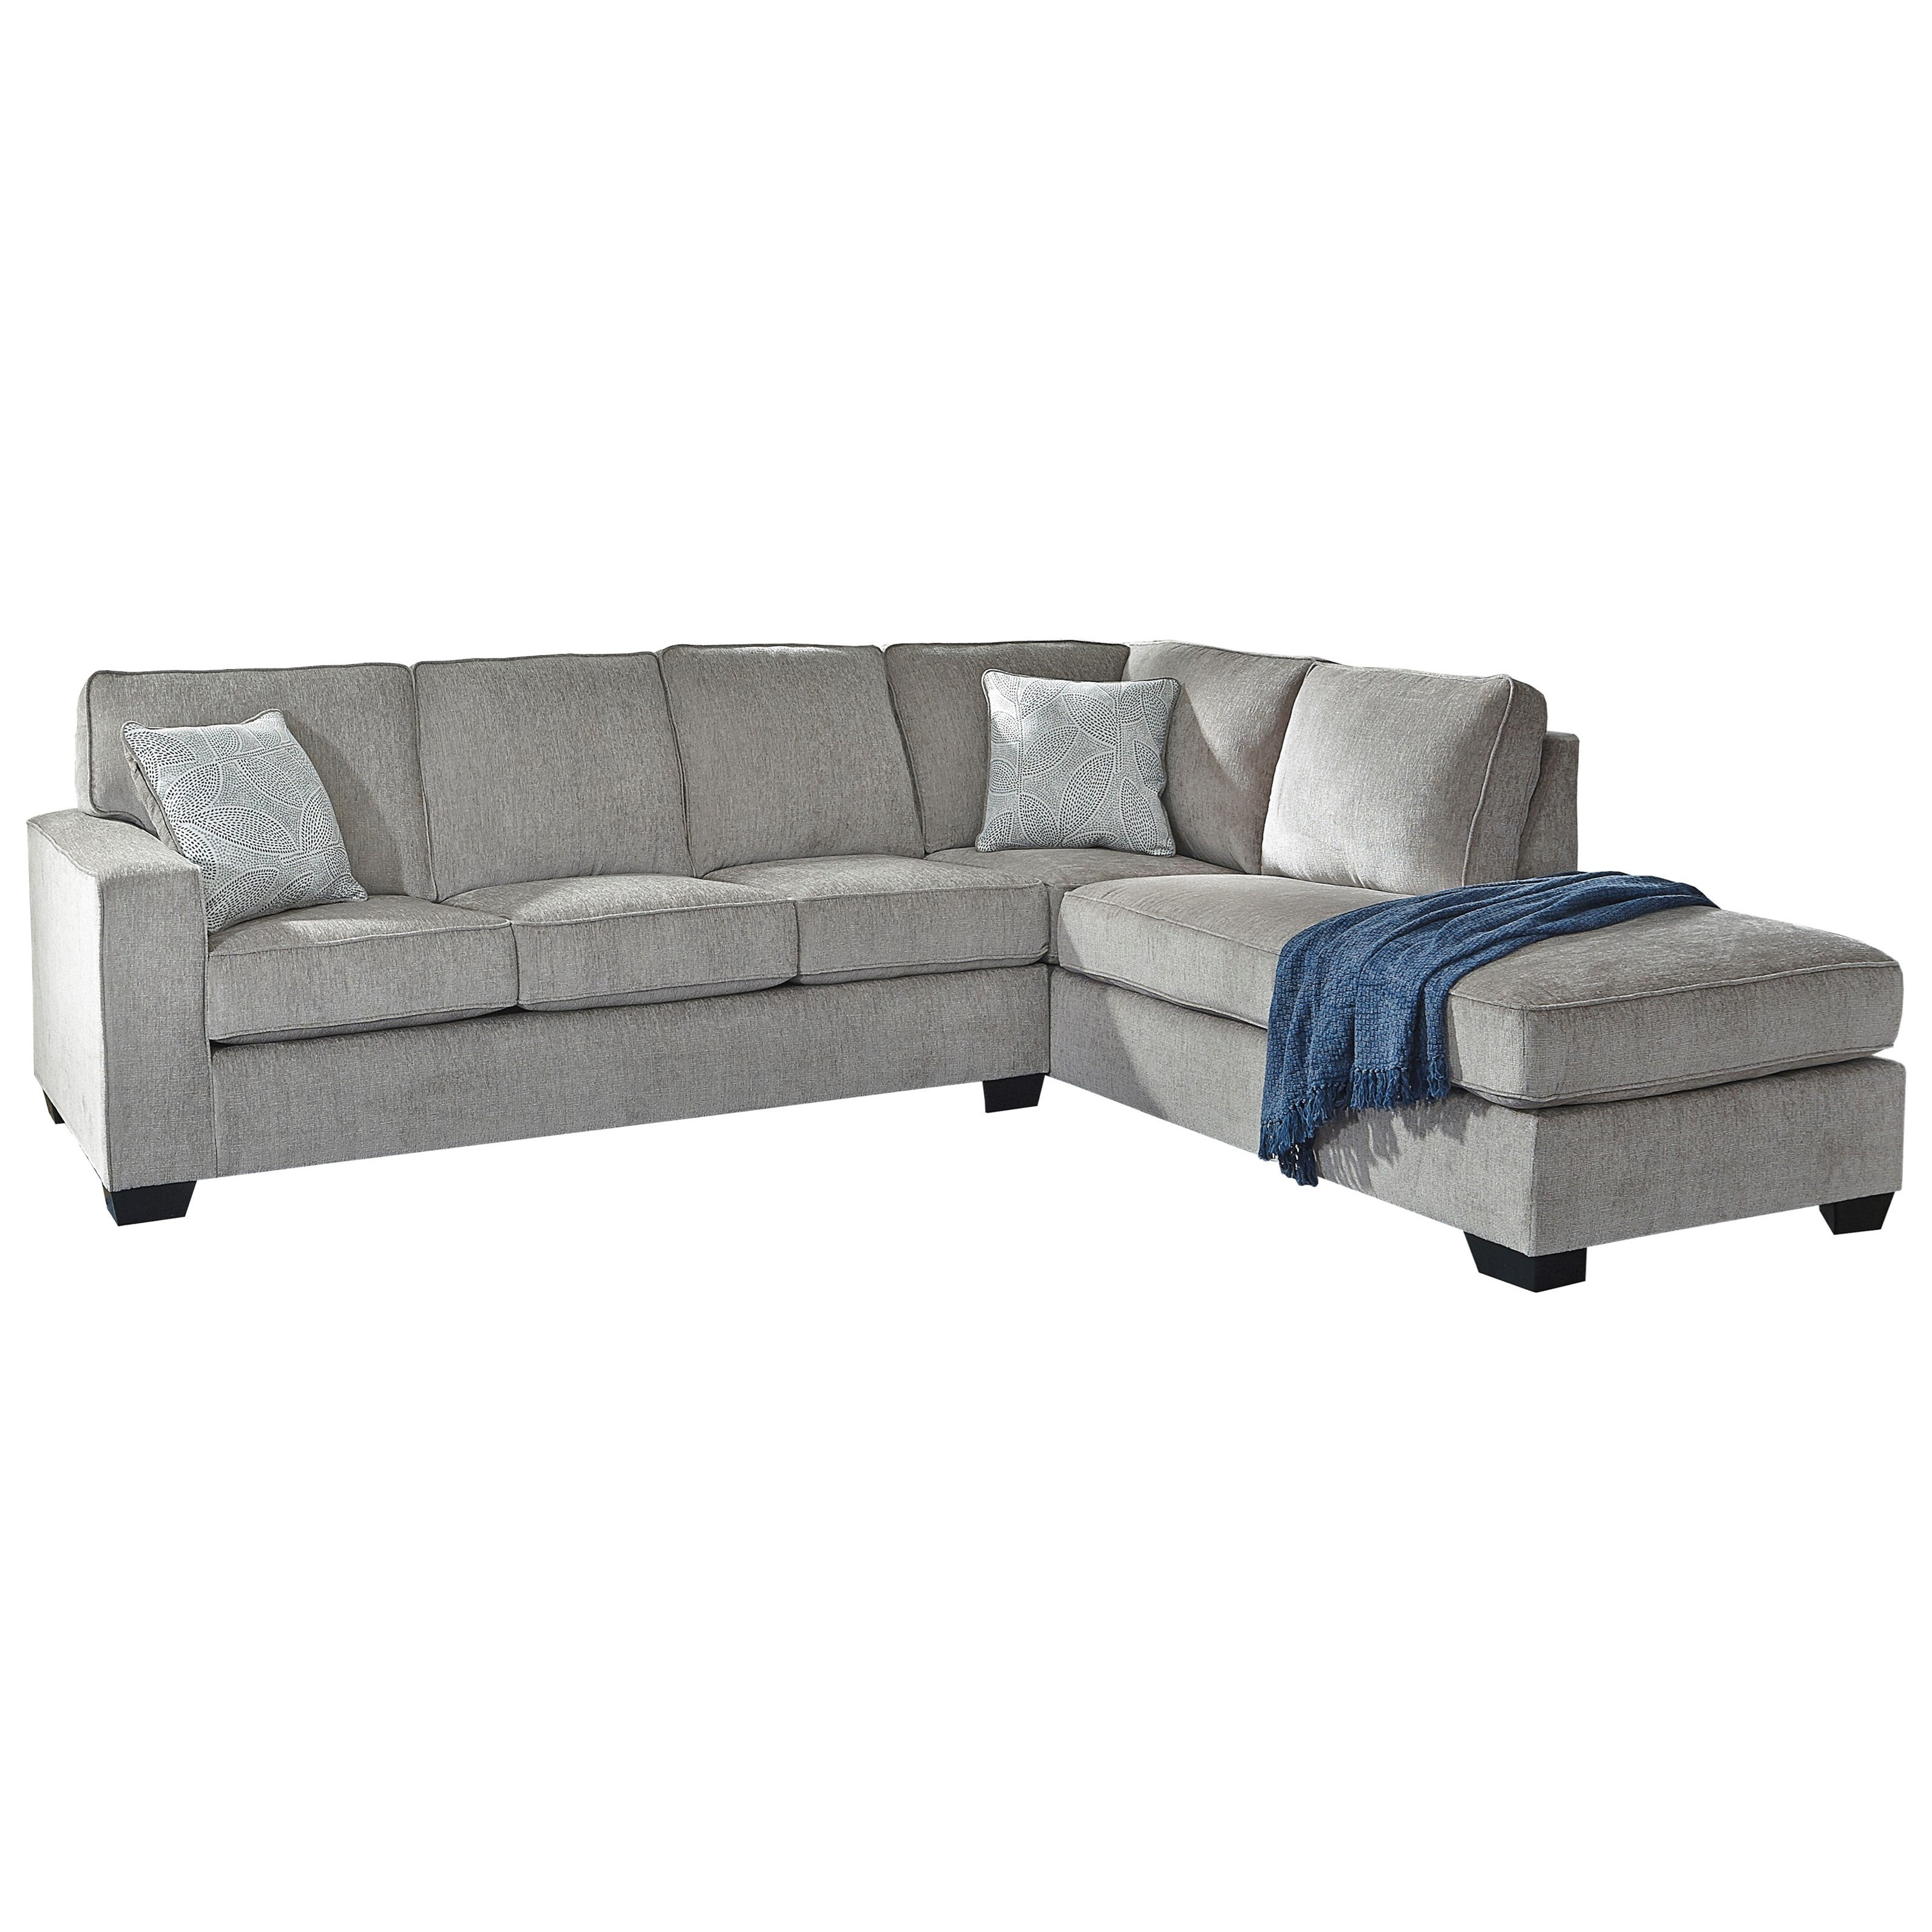 Altari Sleeper Sectional by Ashley (Signature Design) at Johnny Janosik